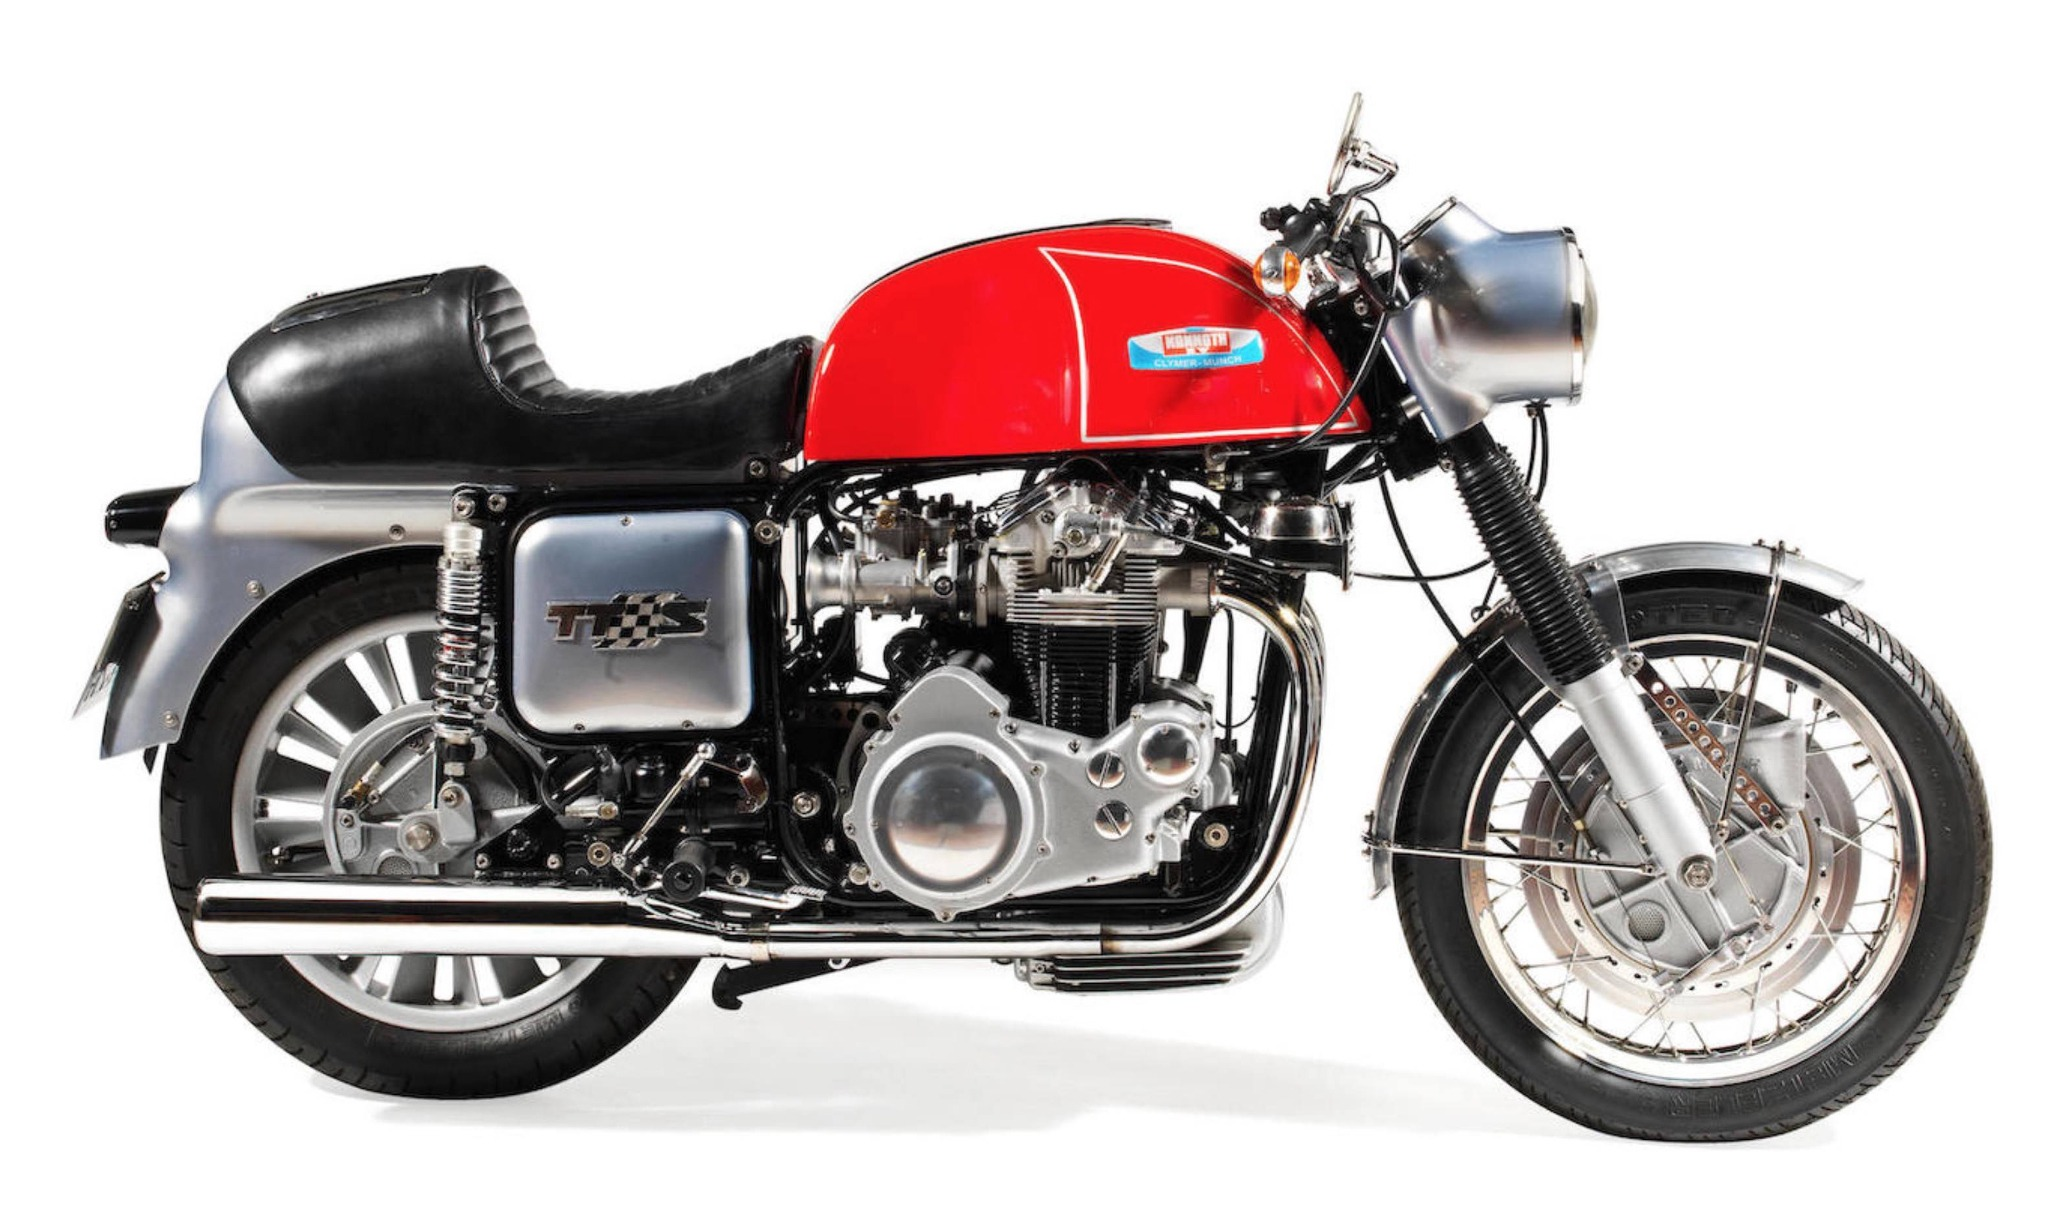 Clymer-Münch Mammoth 1200TTS